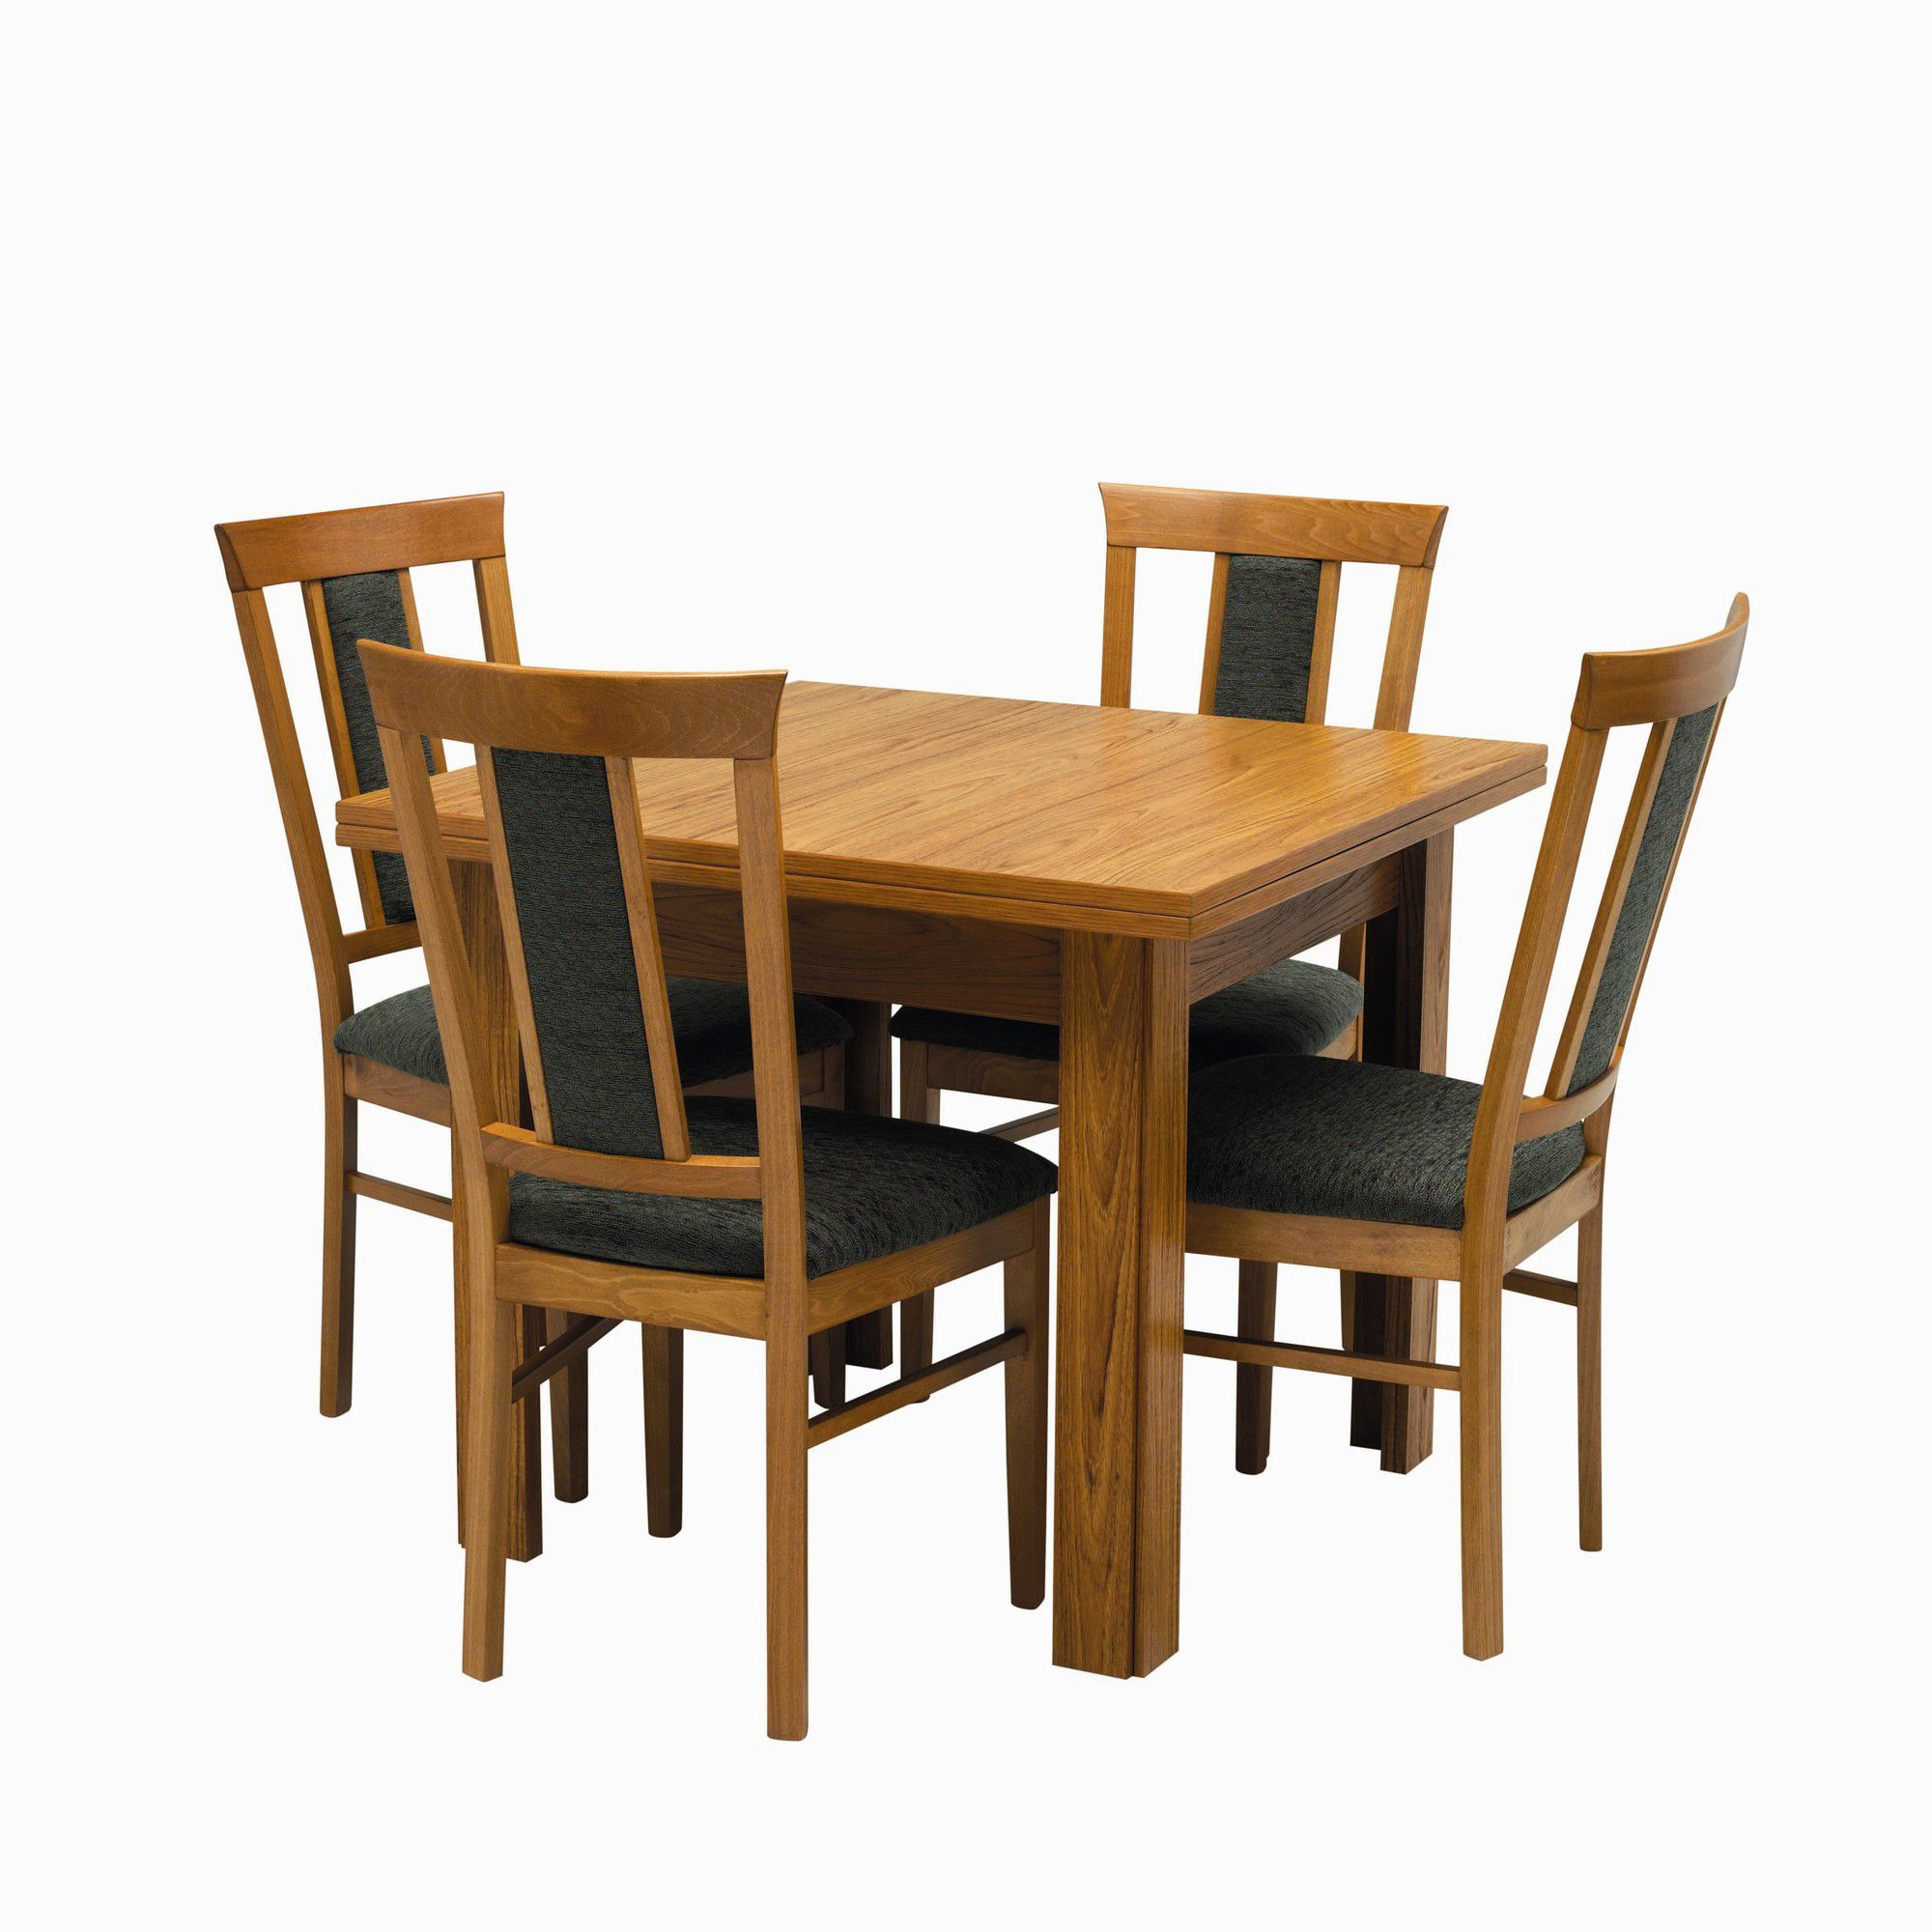 Caxton Tennyson Butterfly 4 Chair Dining Set - Oyster at Tesco Direct